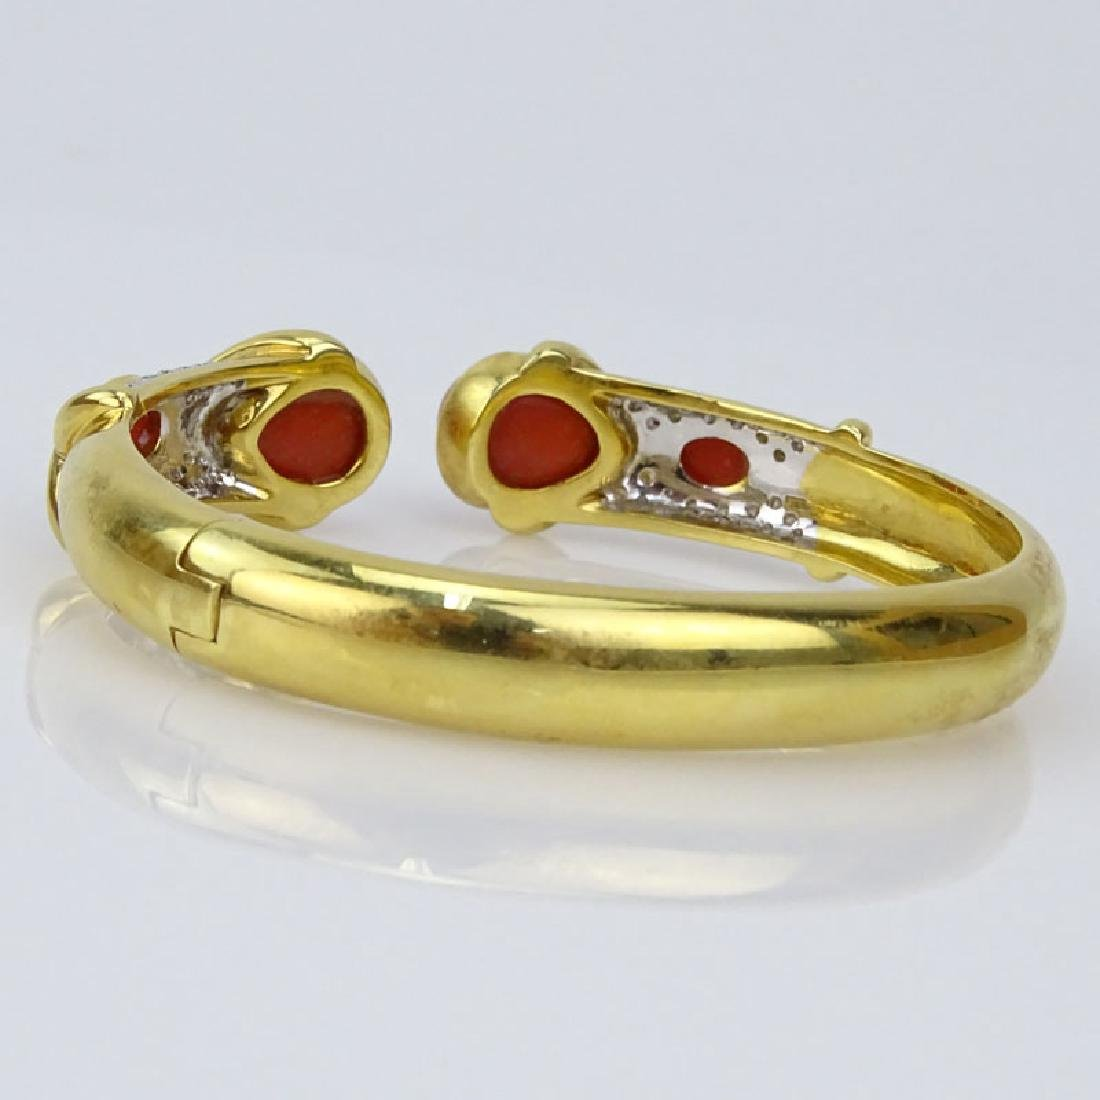 Vintage Italian 18 Karat Yellow Gold, Red Coral and - 3